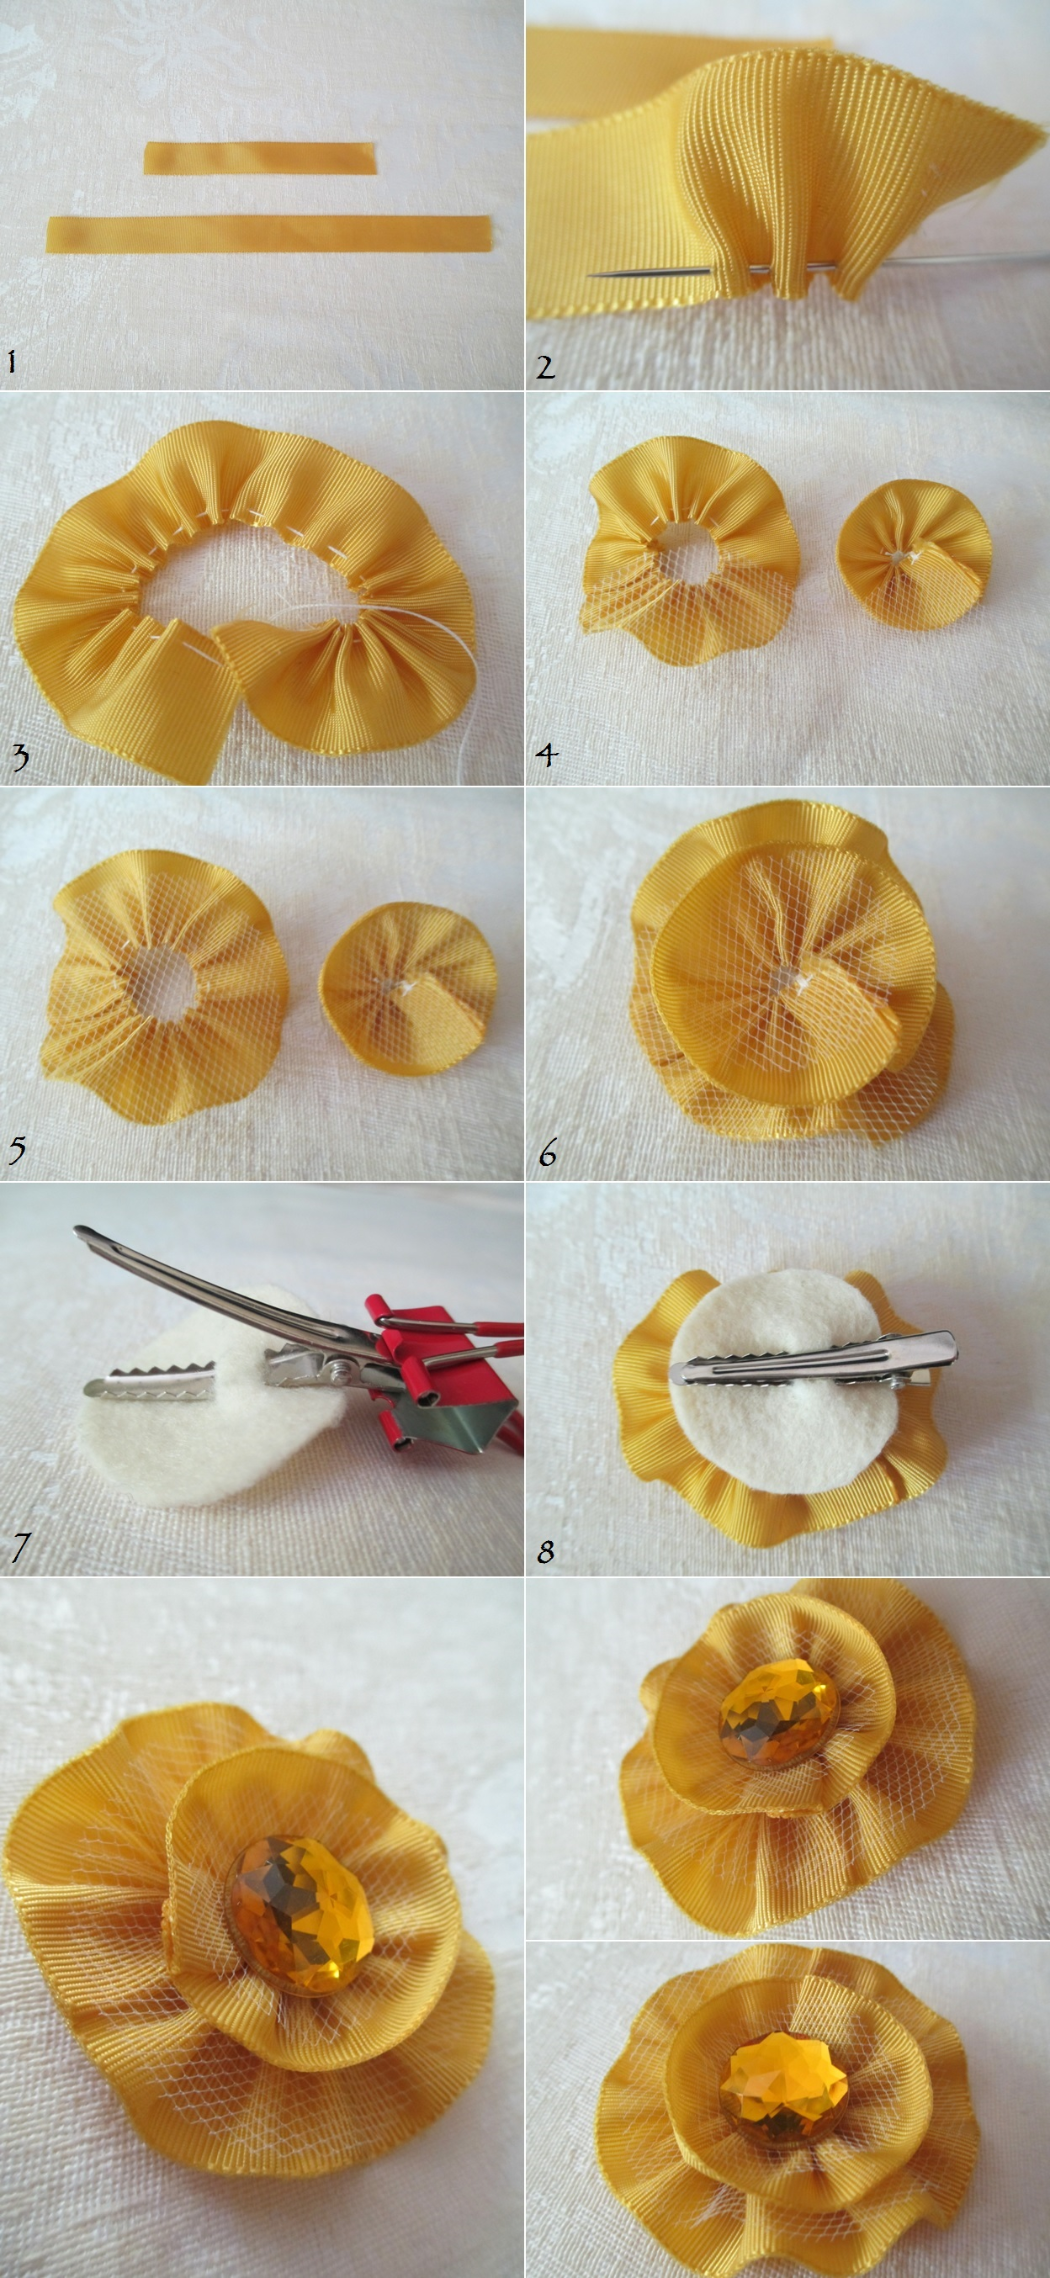 Felt Flower Tutorial Step By Step